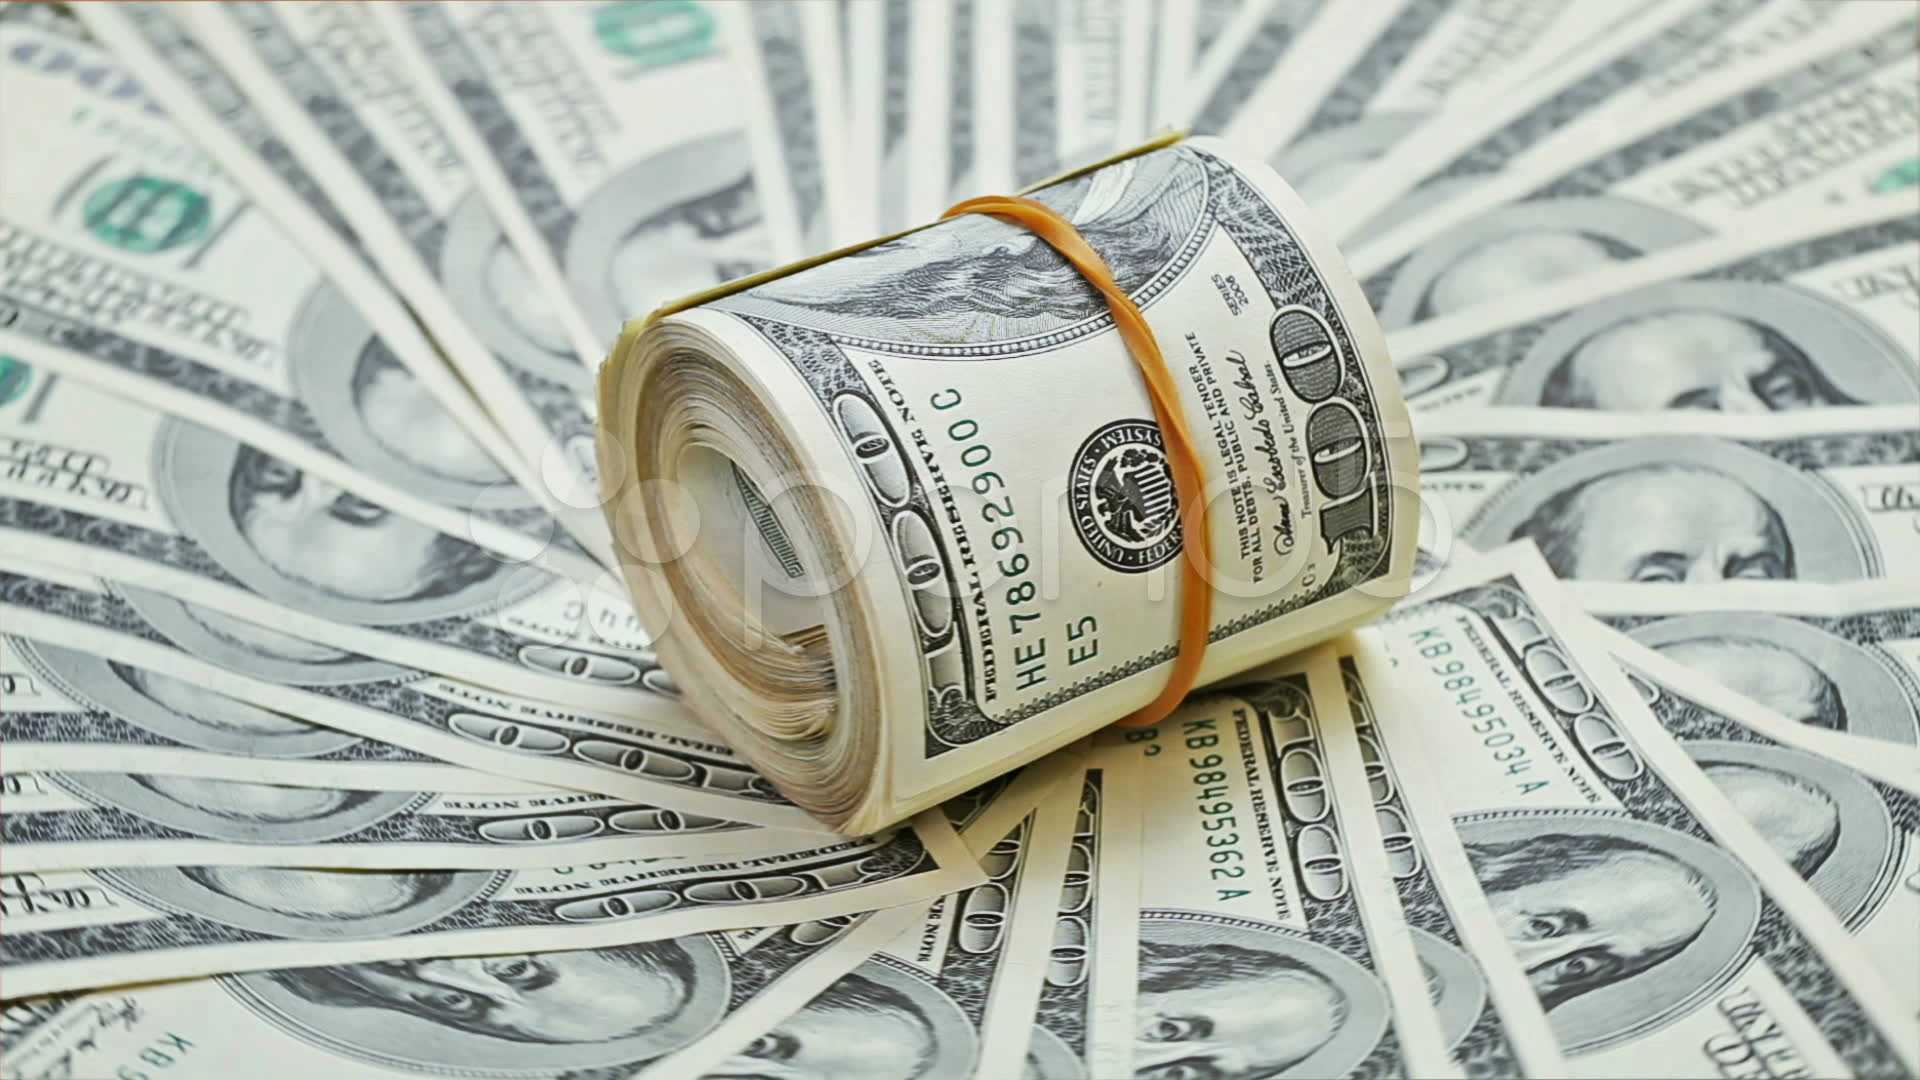 Money Backgrounds – HD Wallpapers